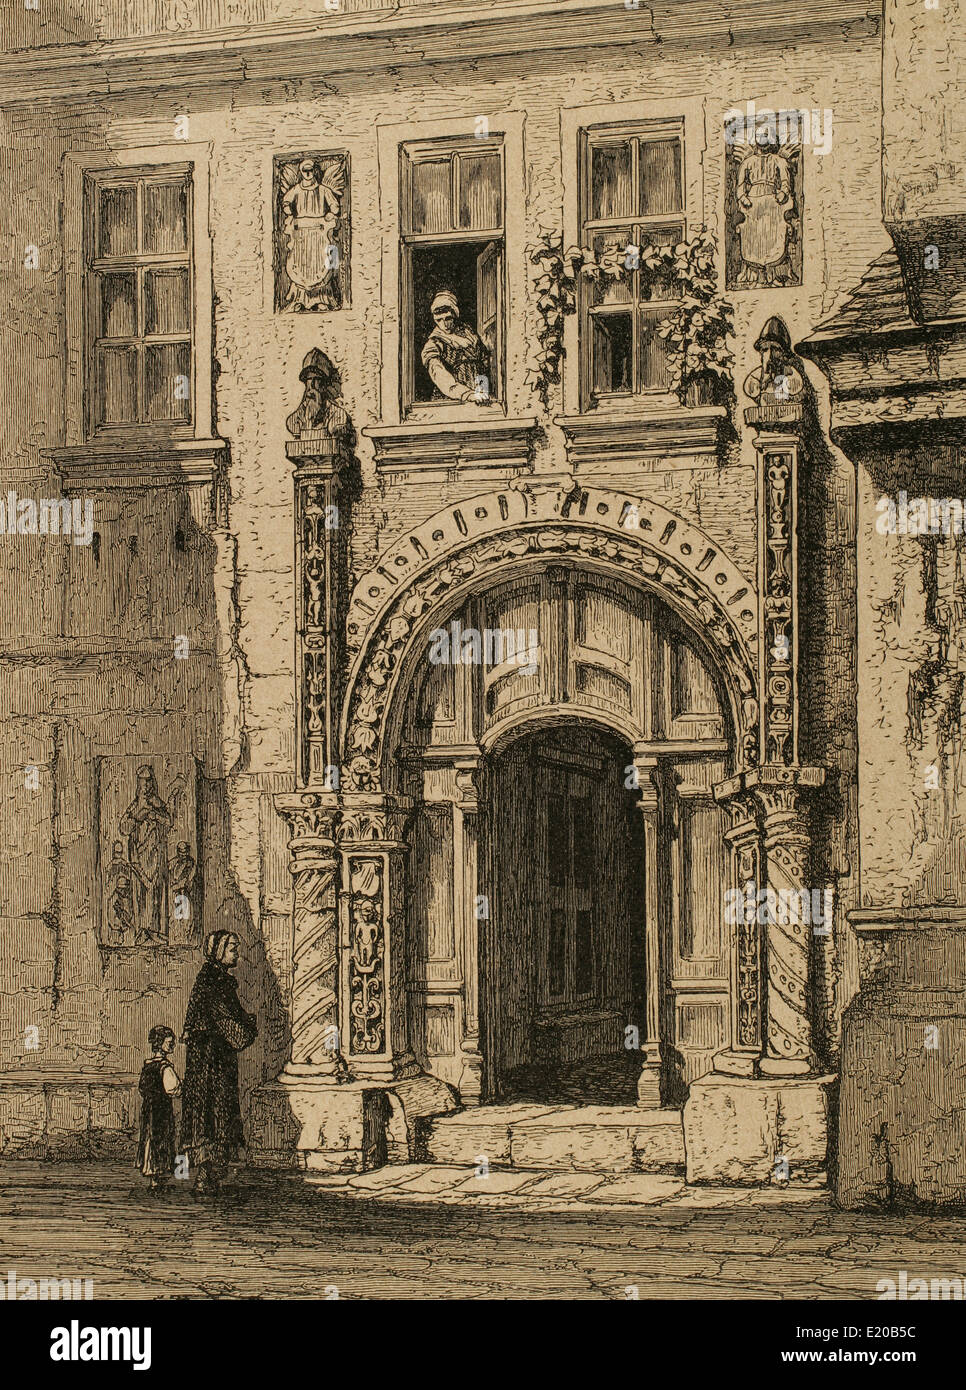 Martin Luther, (1483-1546). German reformer. Luther house in Eisenach. Engraving. - Stock Image